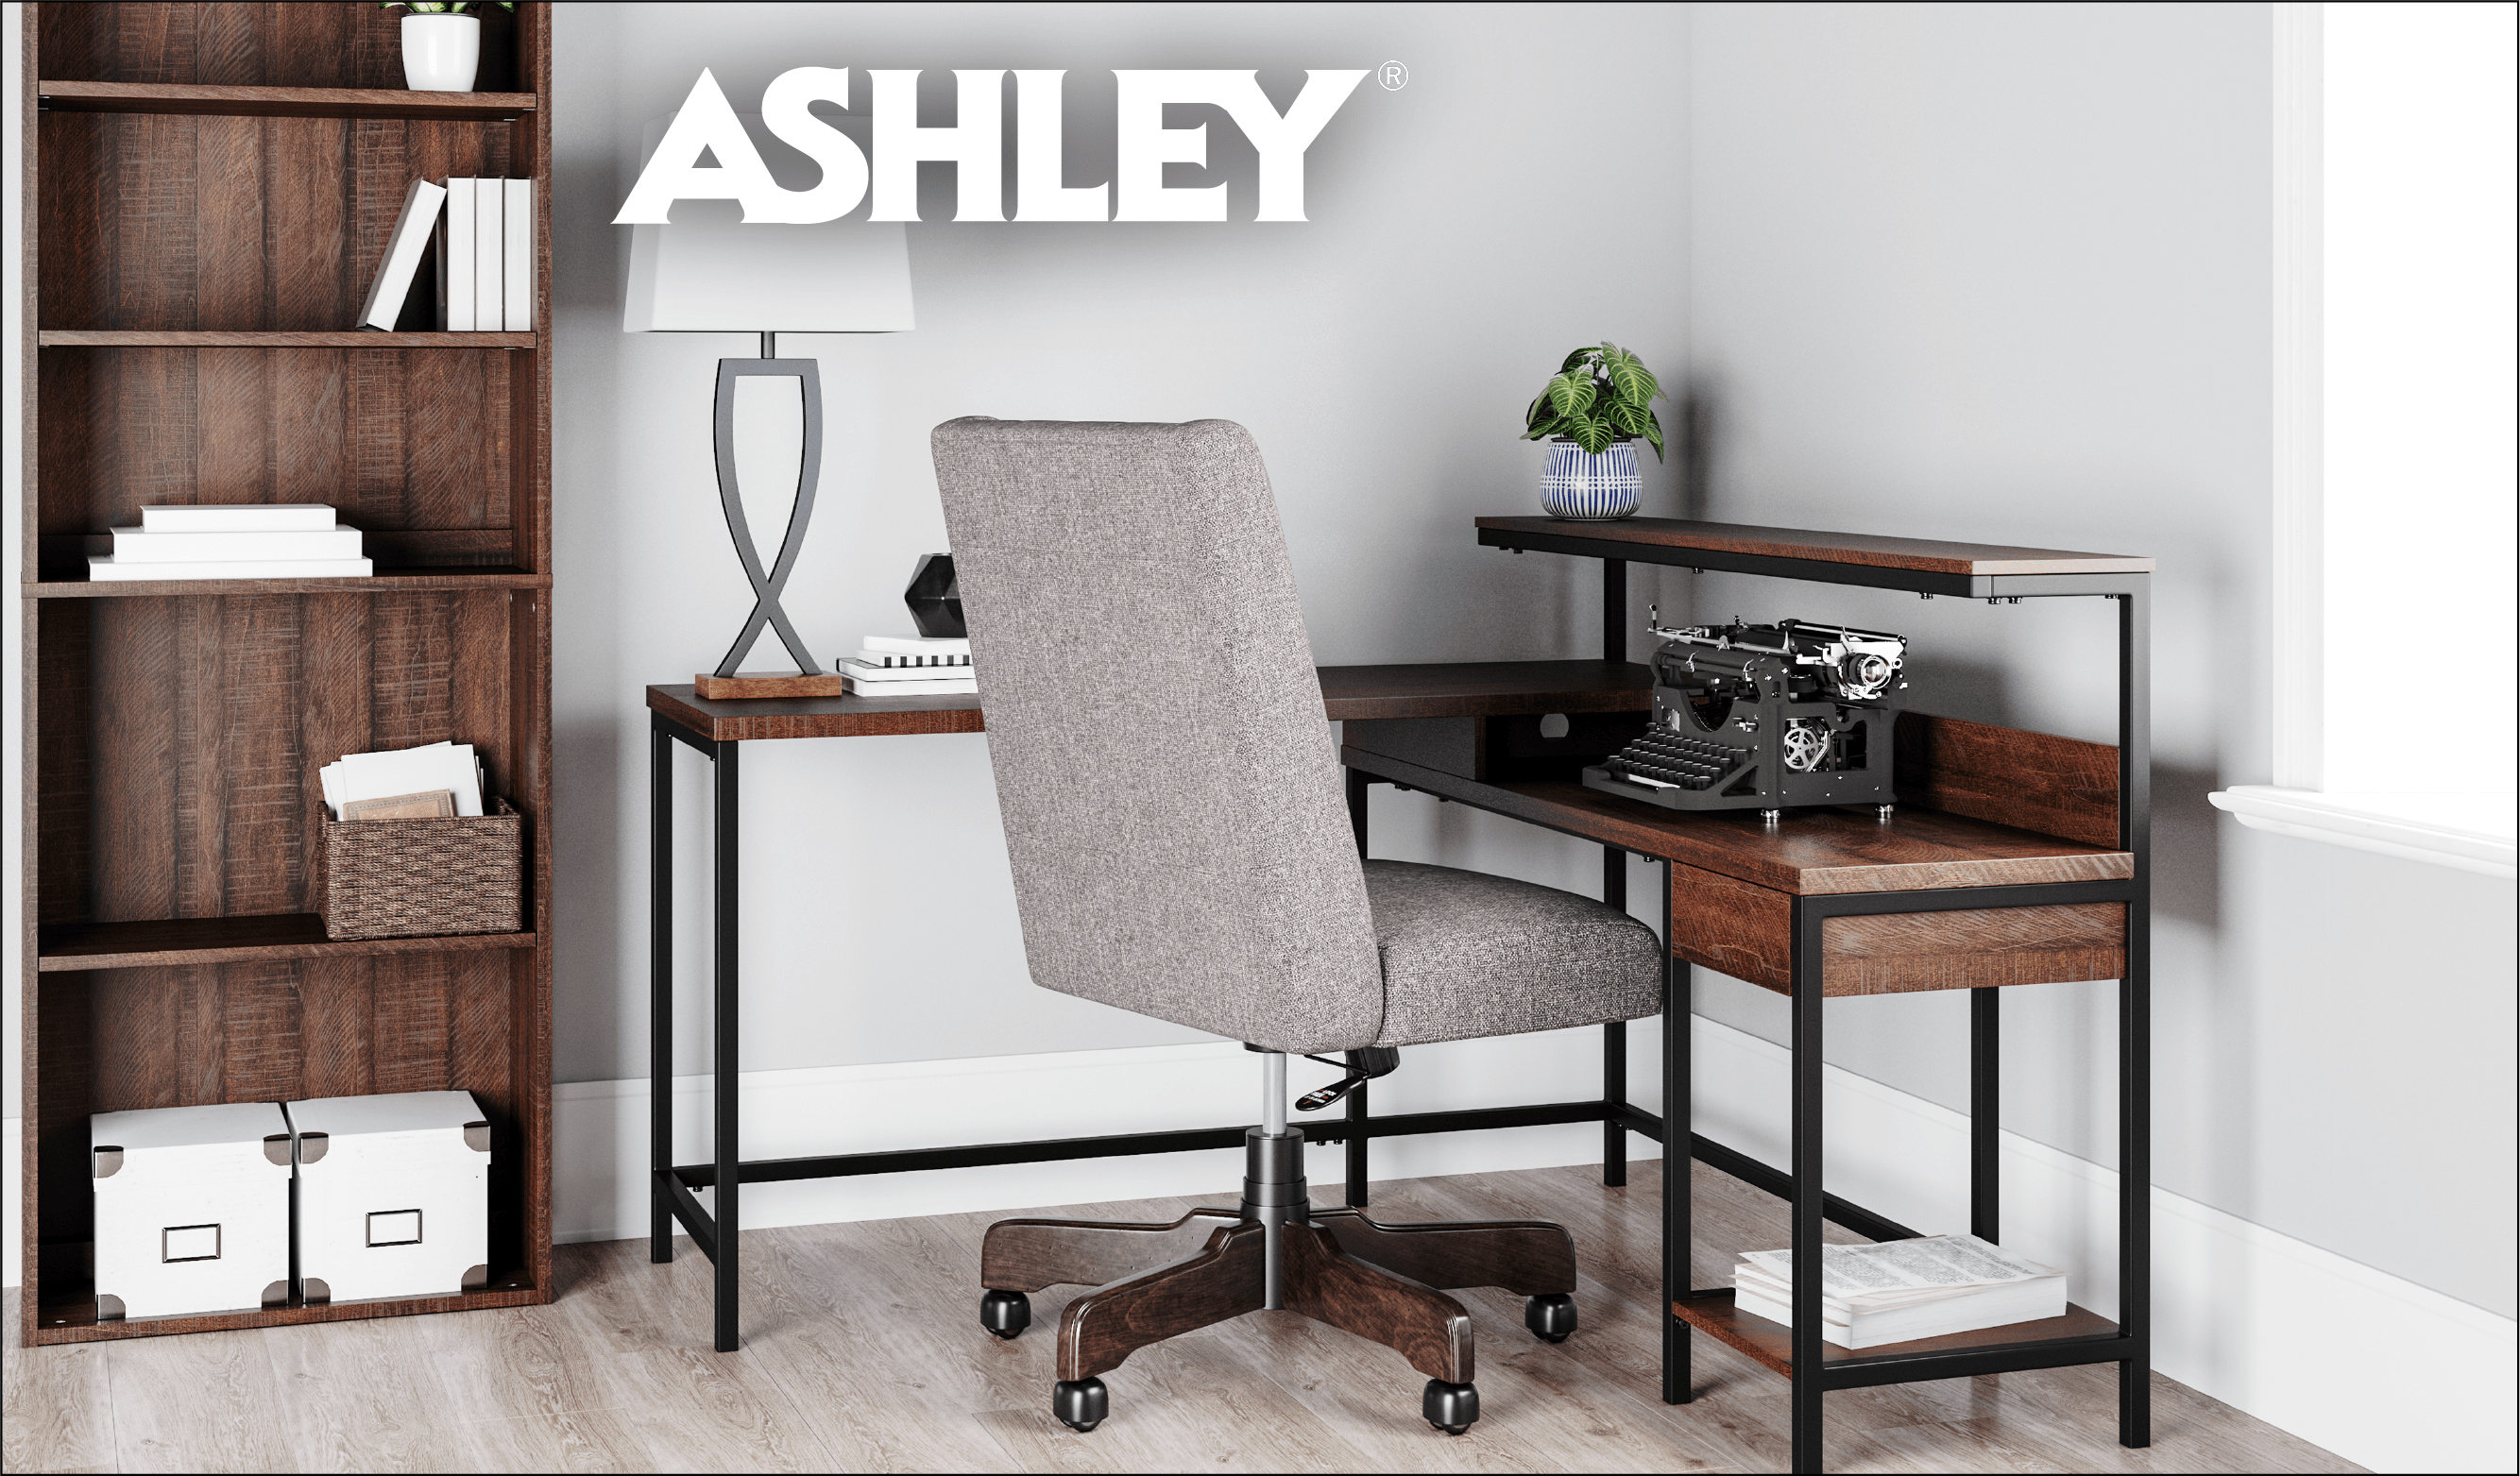 Ashley Furniture at AFW!